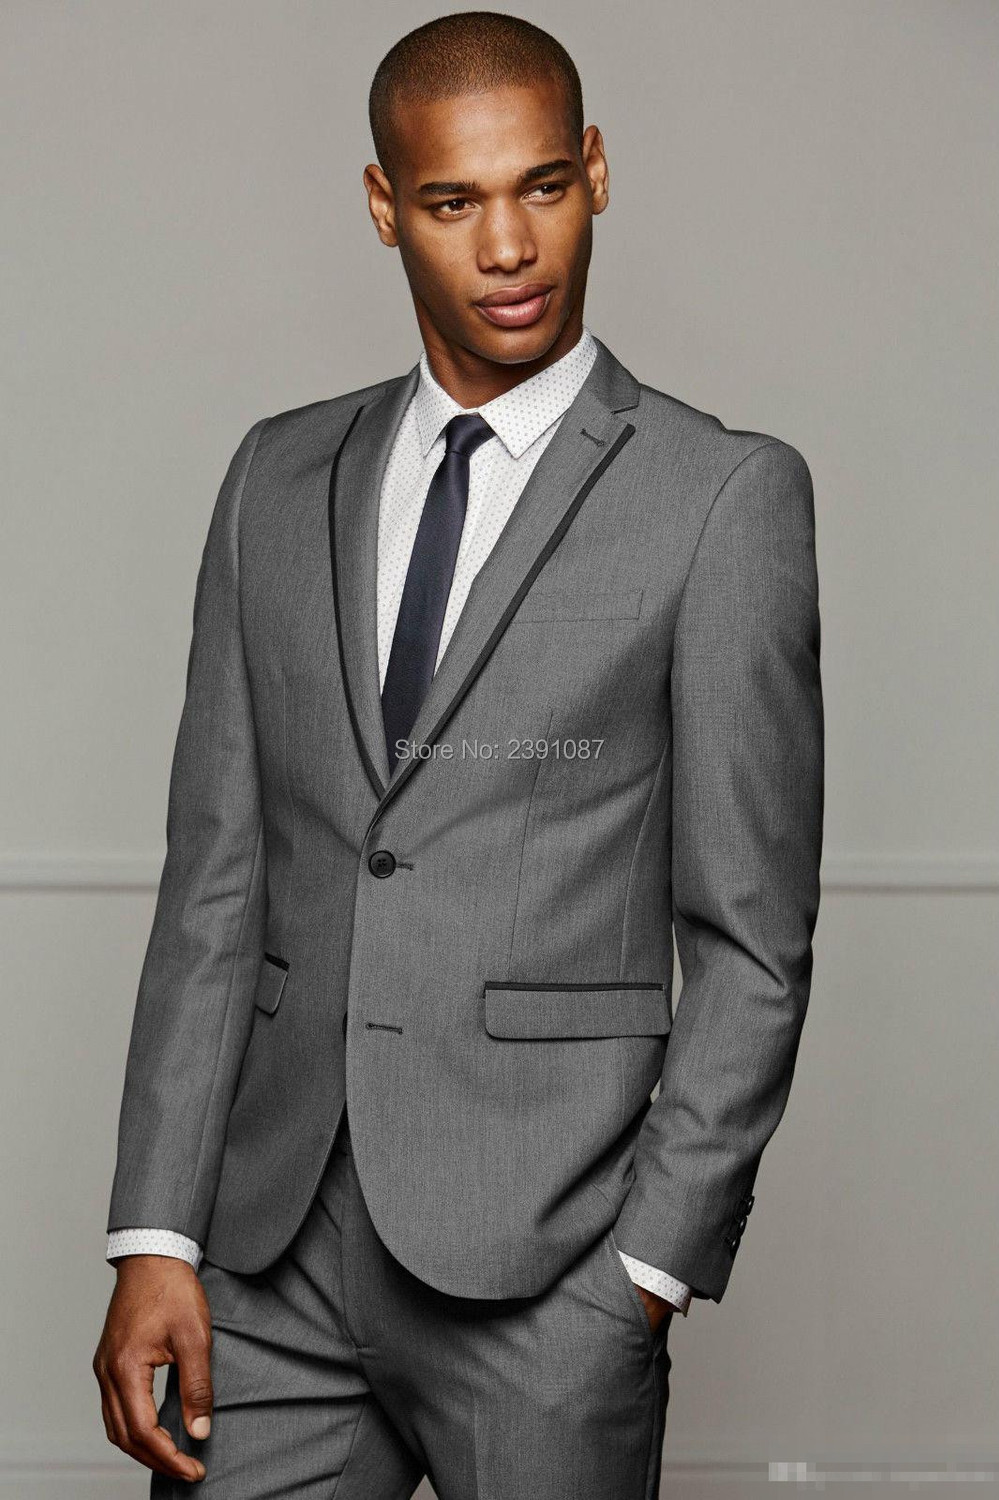 Hot Grey Wedding Tuxedos For Men Grooms Business Party Suits ...